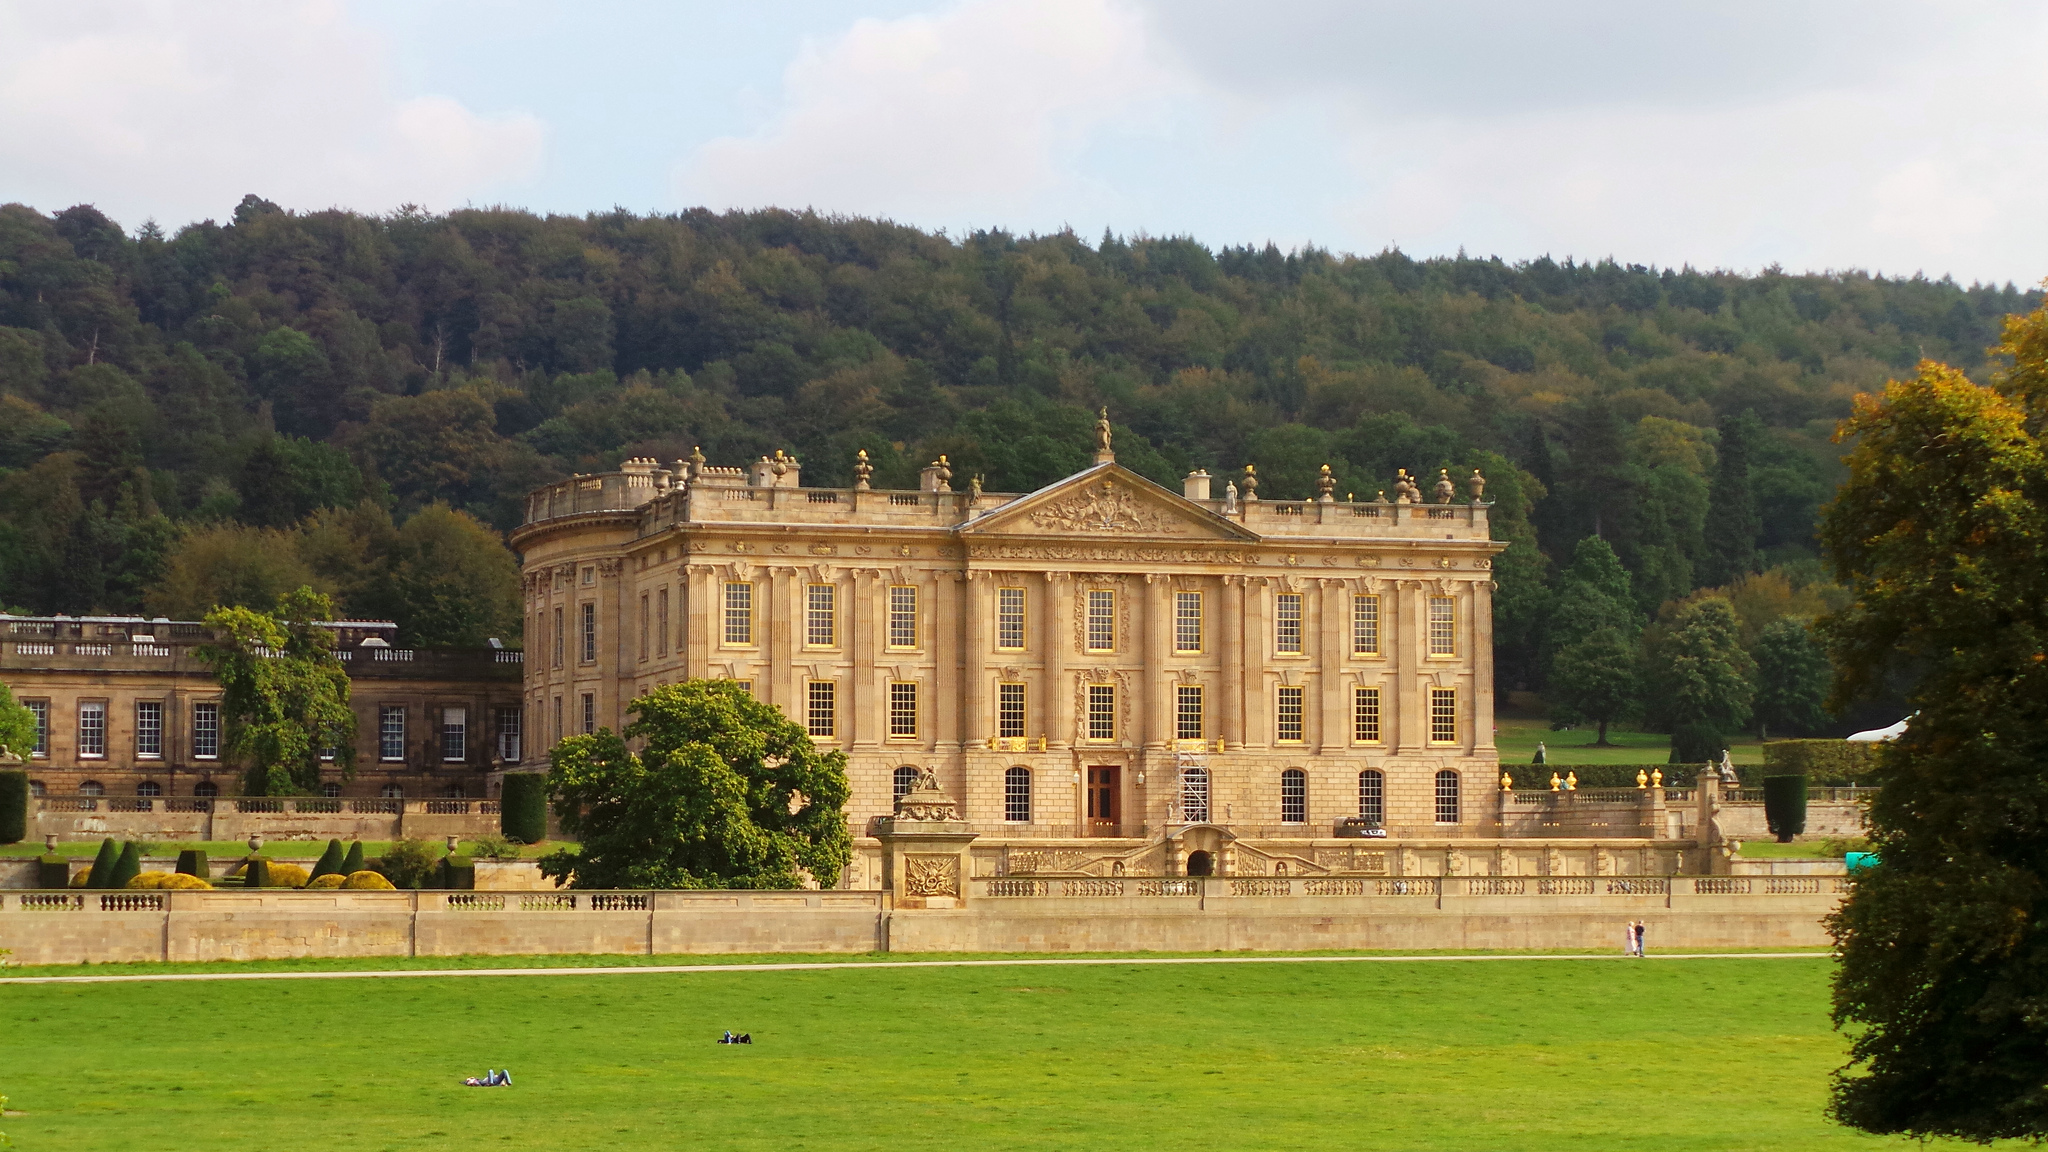 The Most Beautiful Stately Homes in England